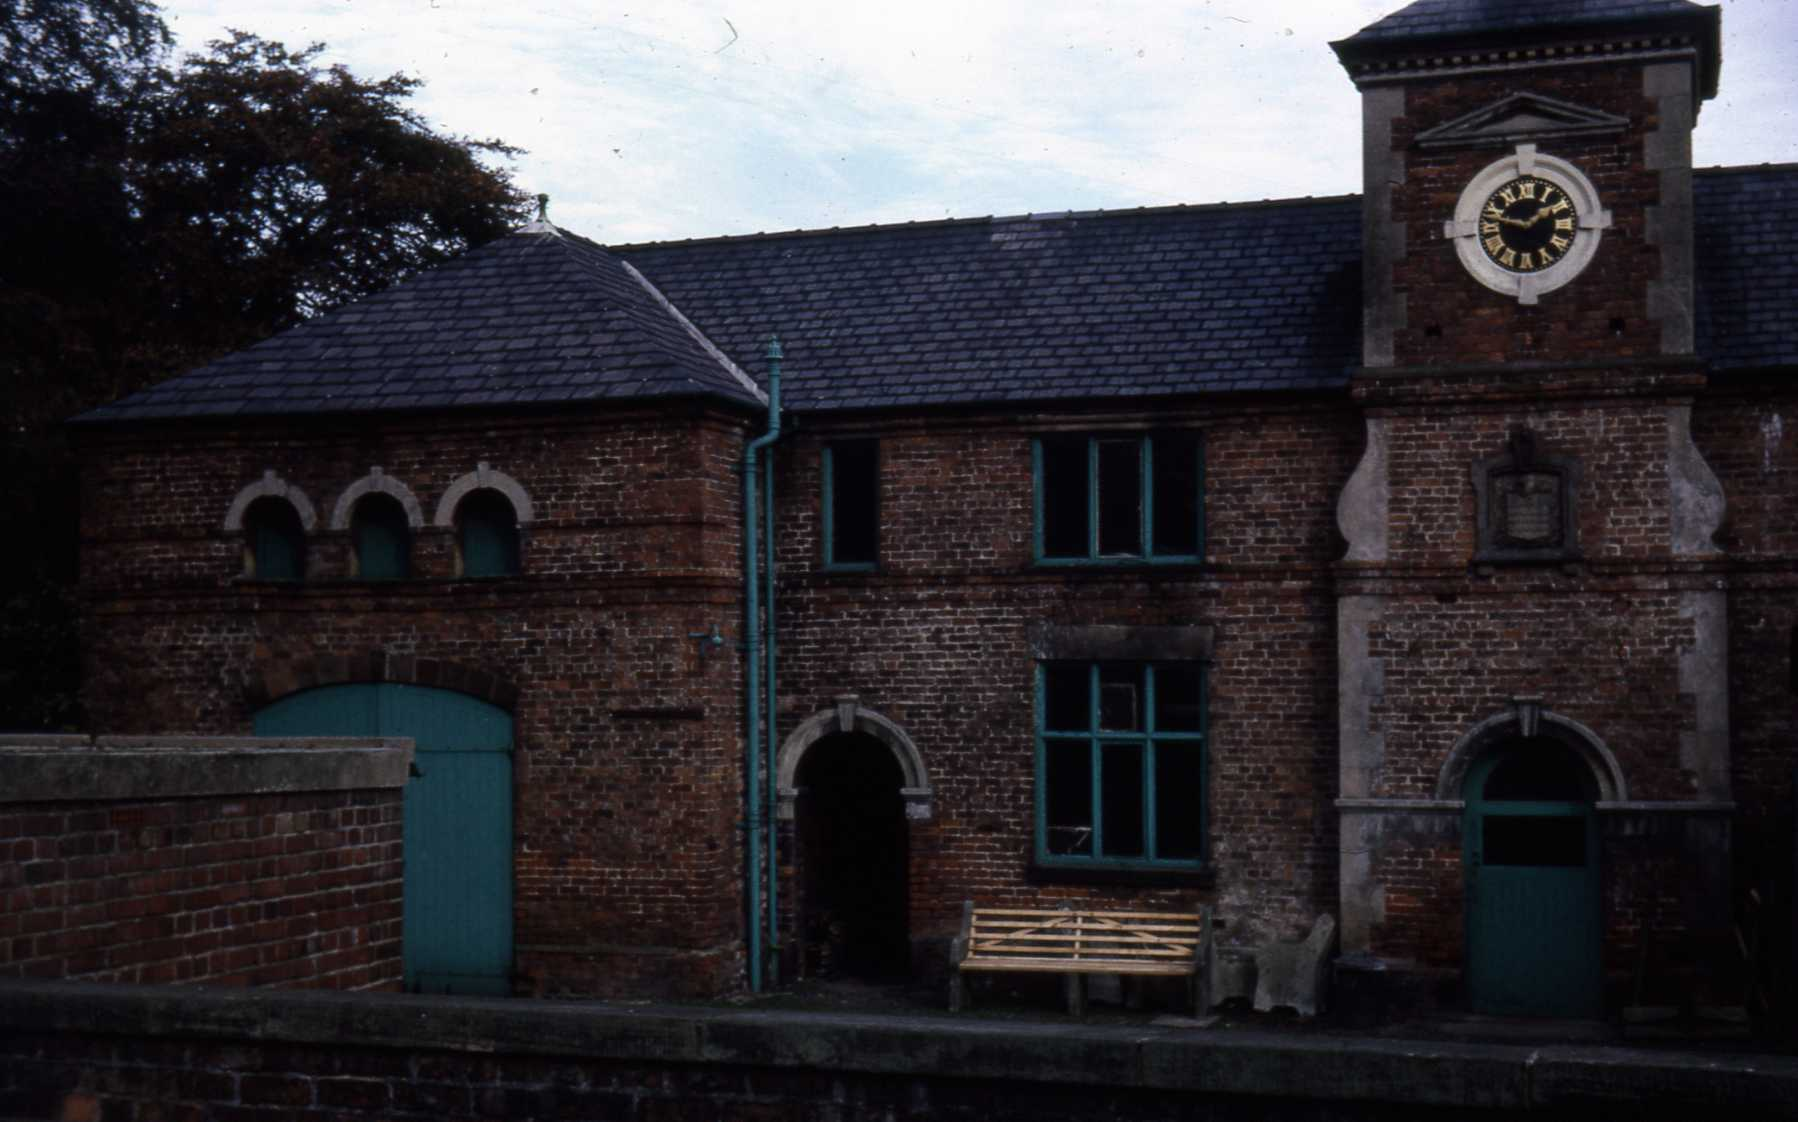 D9 002 1830 Door and Window Heads. Coach House and Stables. Castle Park.jpg